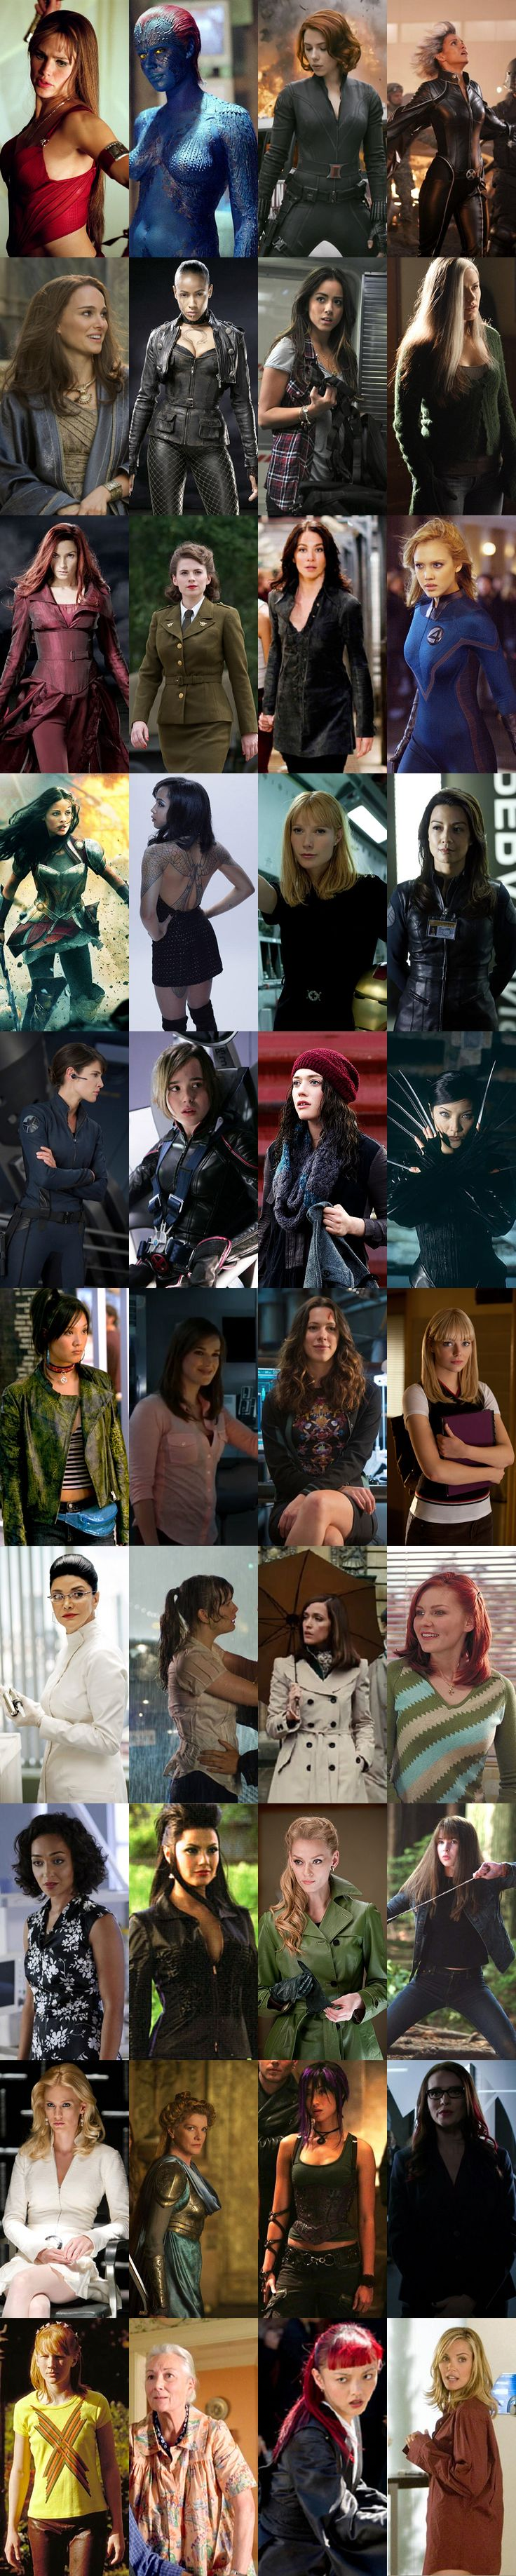 """""""Women of Marvel, stand to unite! Fight for what you believe! We gain more power as our numbers slowly grow, so unite!"""" Elektra, Mystique, Natasha Romanoff; Black Widow, Storm, Ororo Munroe, Jane Foster, Aunt May, Skye, Jemma Simmons, Simmons, Maria Hill, Victoria Hand, Emma Frost, Jean Grey, Frigga, Girl in the Flower Dress, Viper; Madame Viper, Darcy Lewis, Agent Hill, Betty Ross, Mary Jane Watson, Gwen Stacey, Typhoid Mary, Peggy Carter, Kitty Pryde & Abby Miller."""